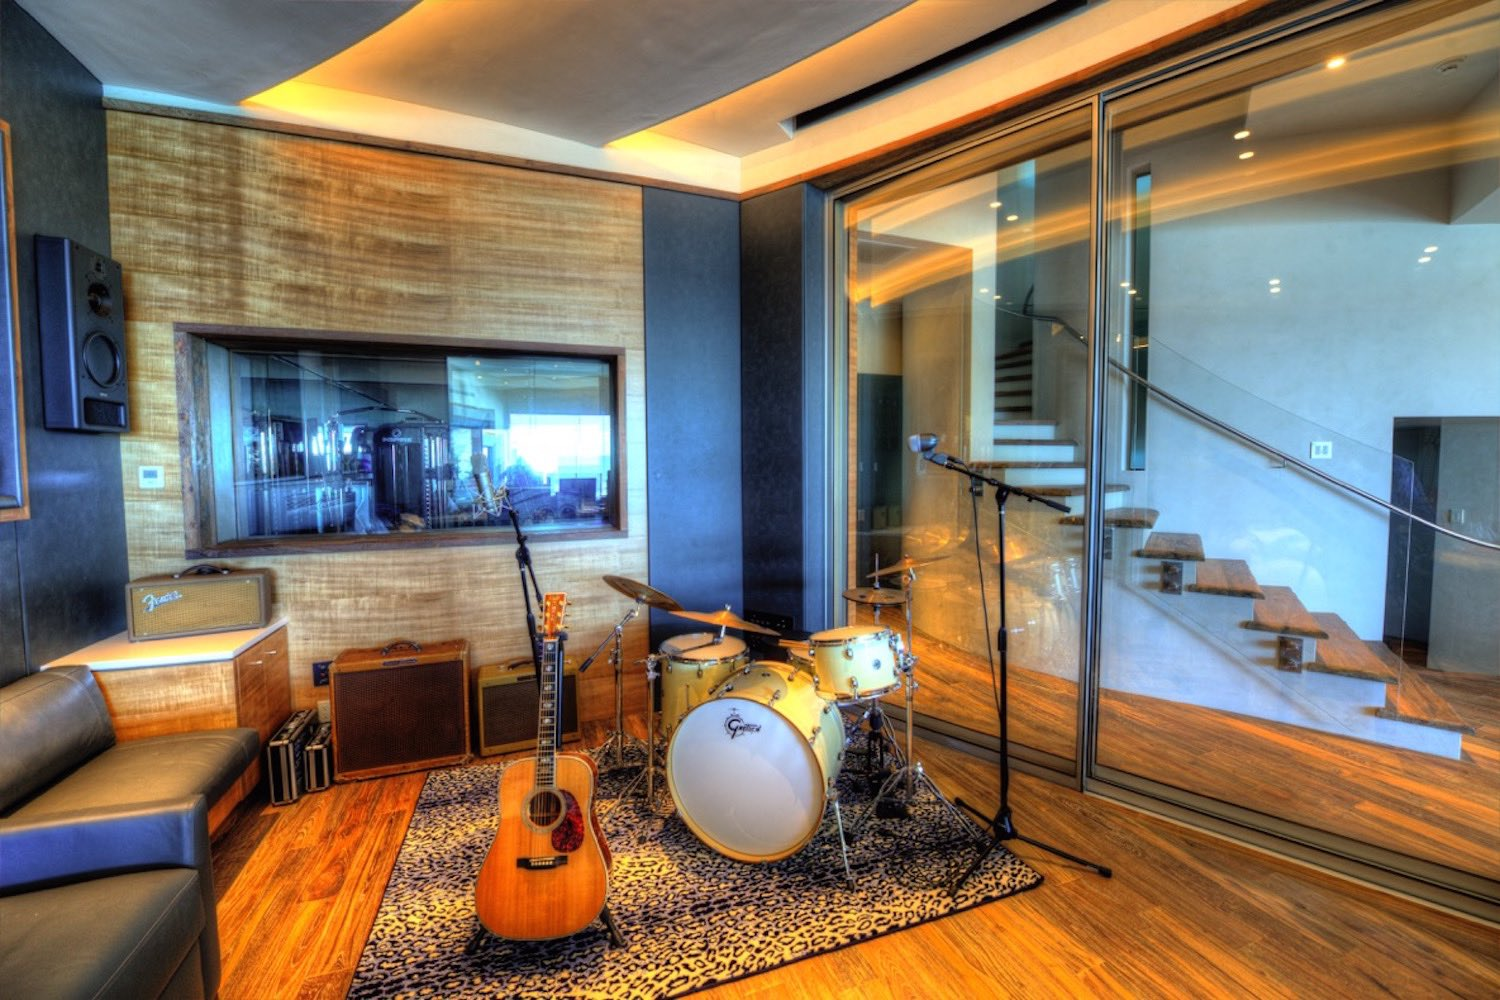 Chris Huber commissioned WSDG to design his residential private ocean-view recording studio inspired in their glass design in Diante Do Trono. Studio back with drums.